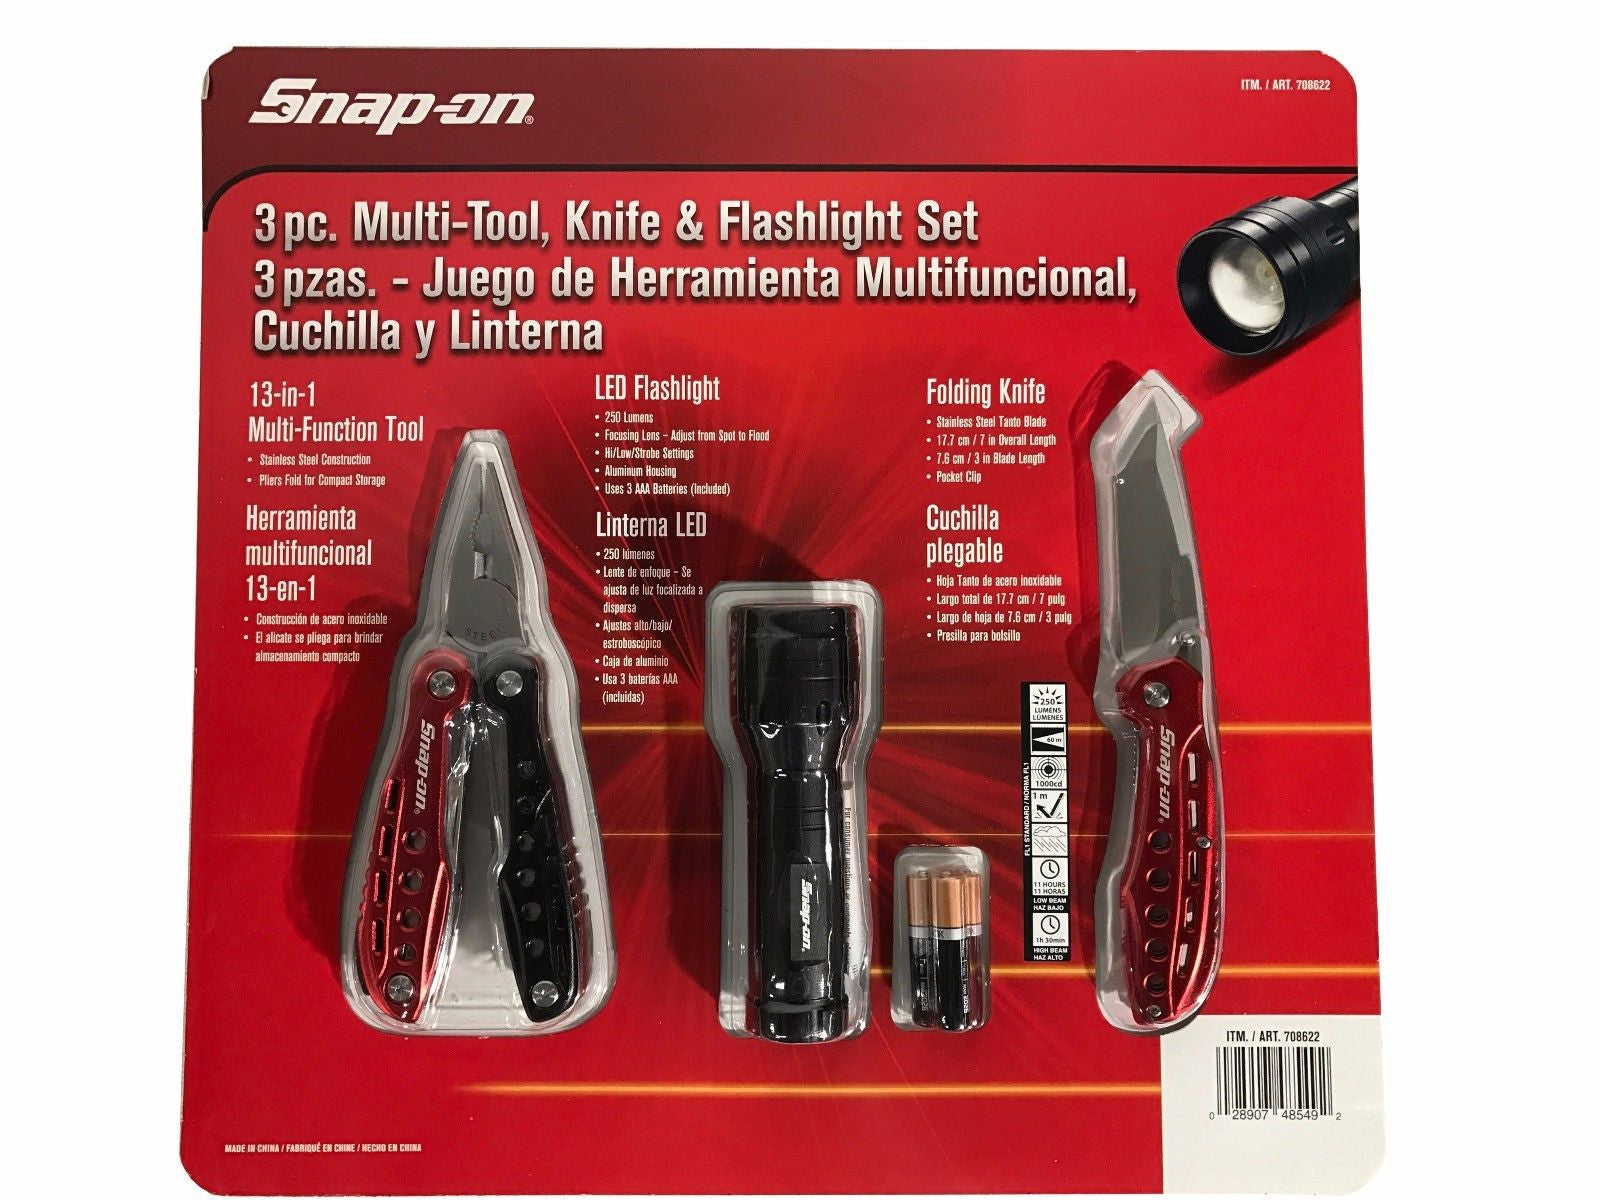 Snap-on 3 Piece Set - Knife, Flashlight & 13-in-1 Multi Function Tool